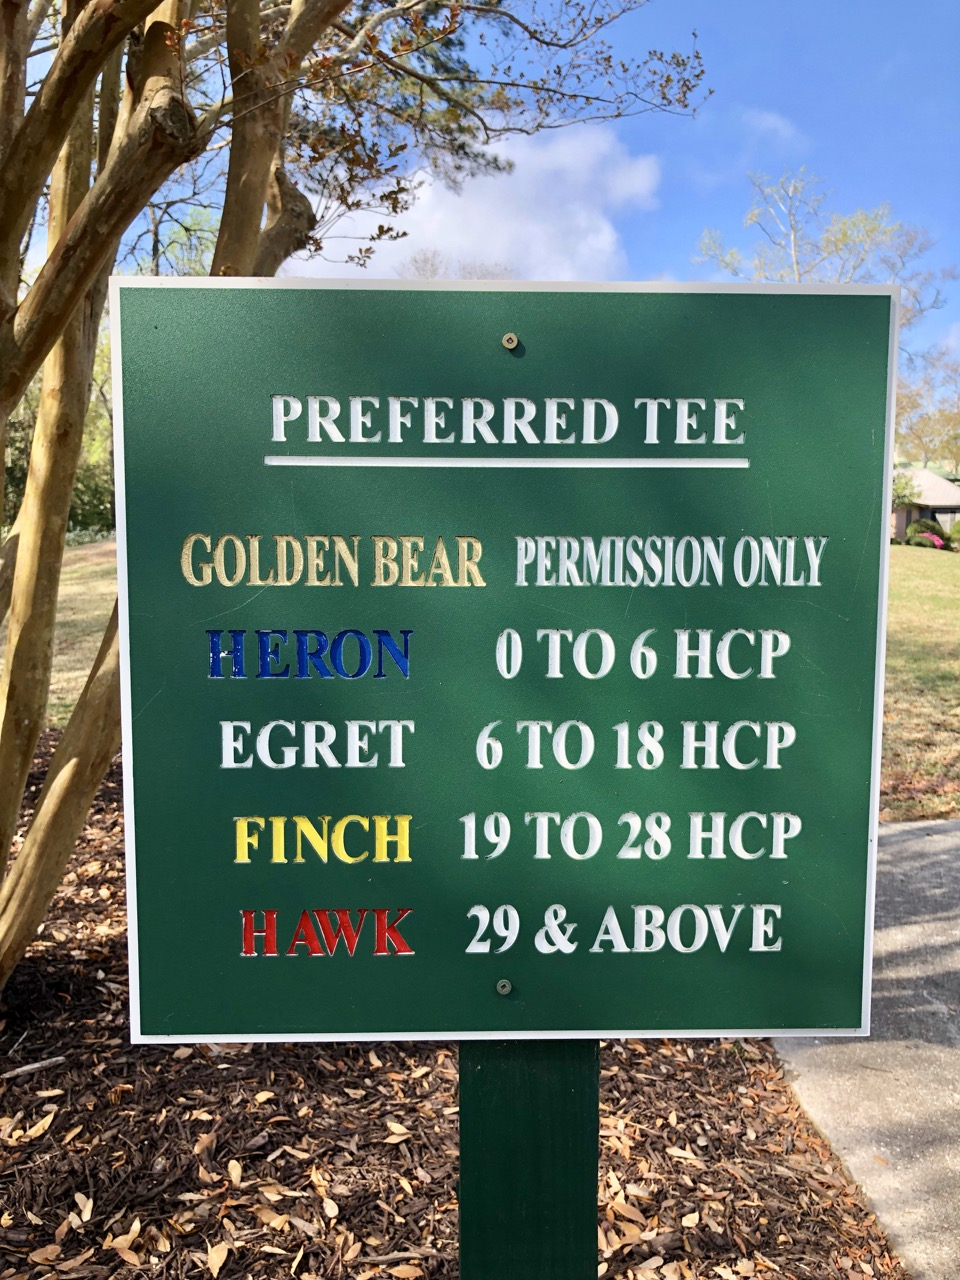 PawleysPreferred tee sign